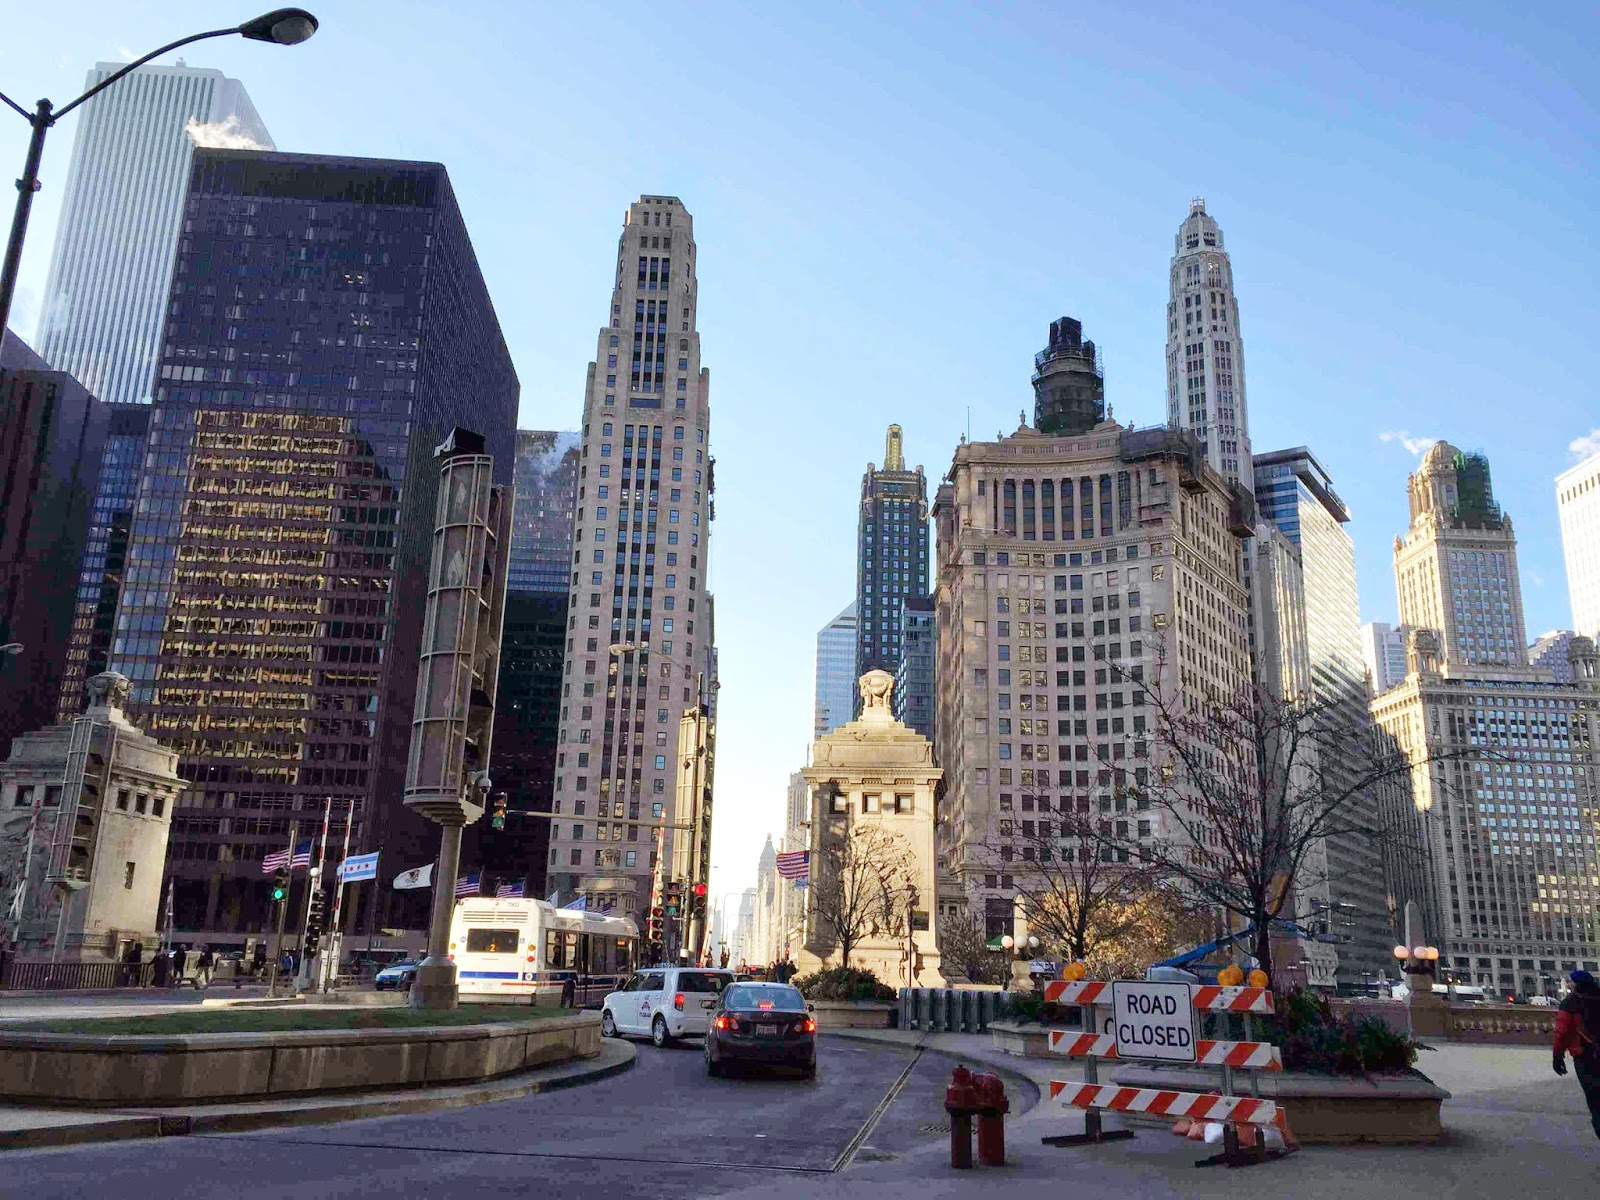 A few things I learned about Chicago